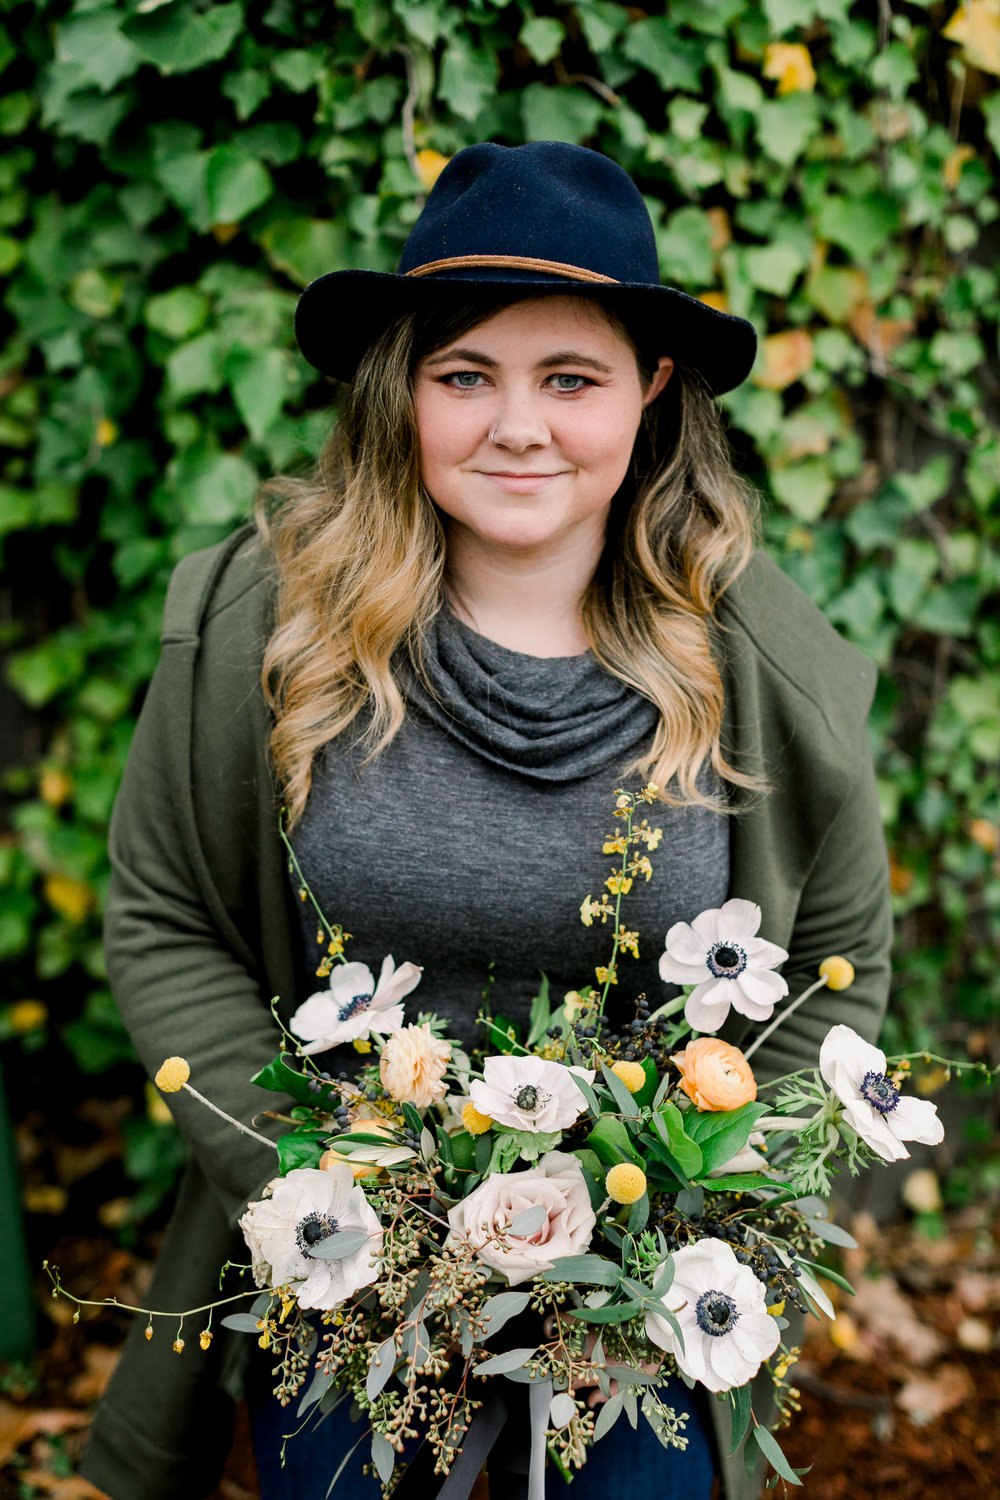 kelsey-connor-and-co-wedding-planner-floral-curator-mary-kate-steele-photography